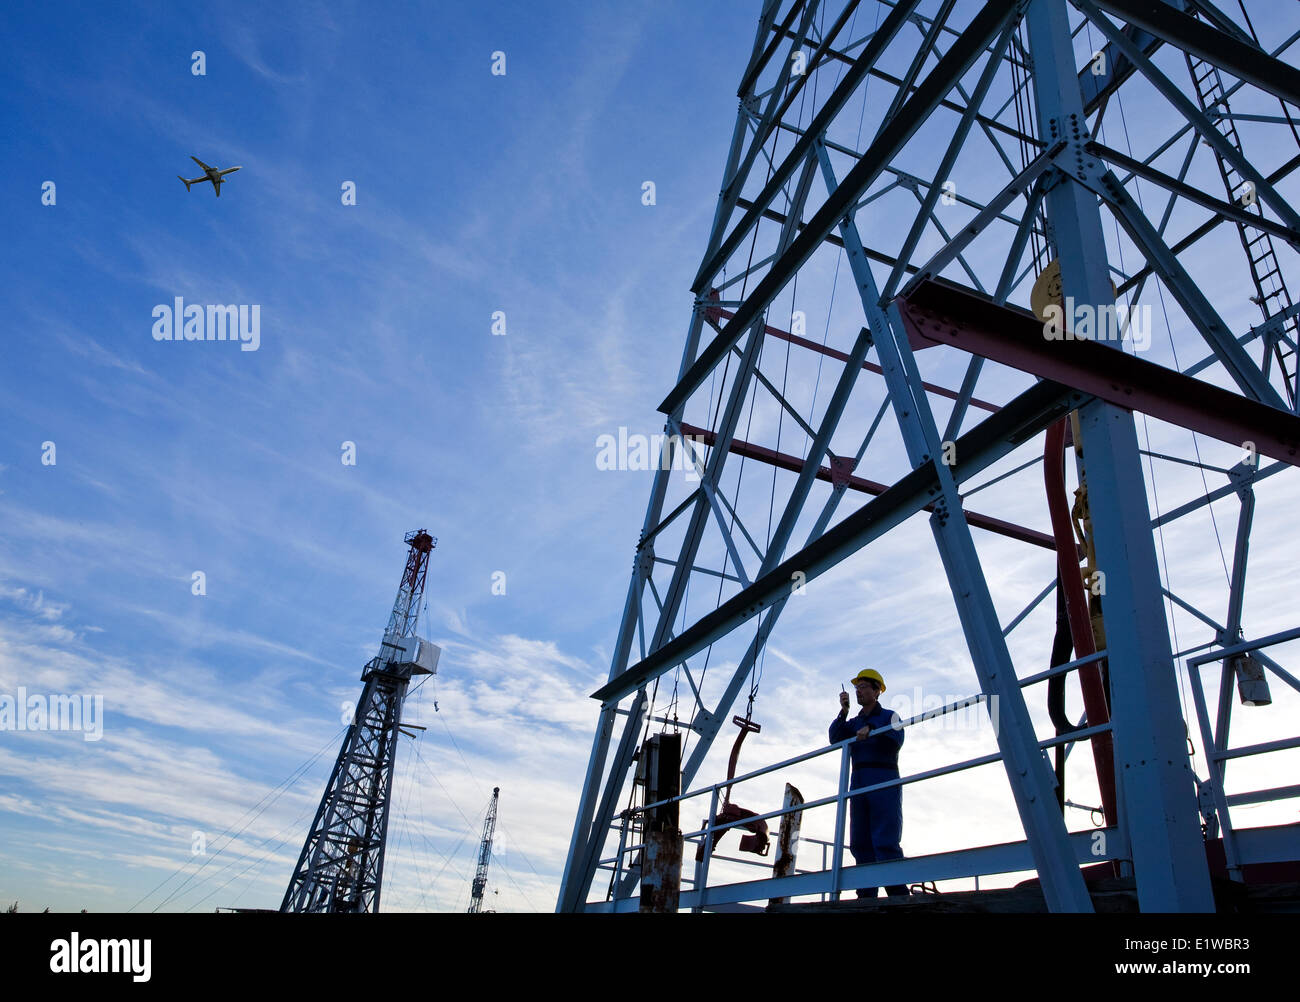 Drilling rig worker talking on radio on platform with airplane flying overhead, Alberta, Canada Stock Photo